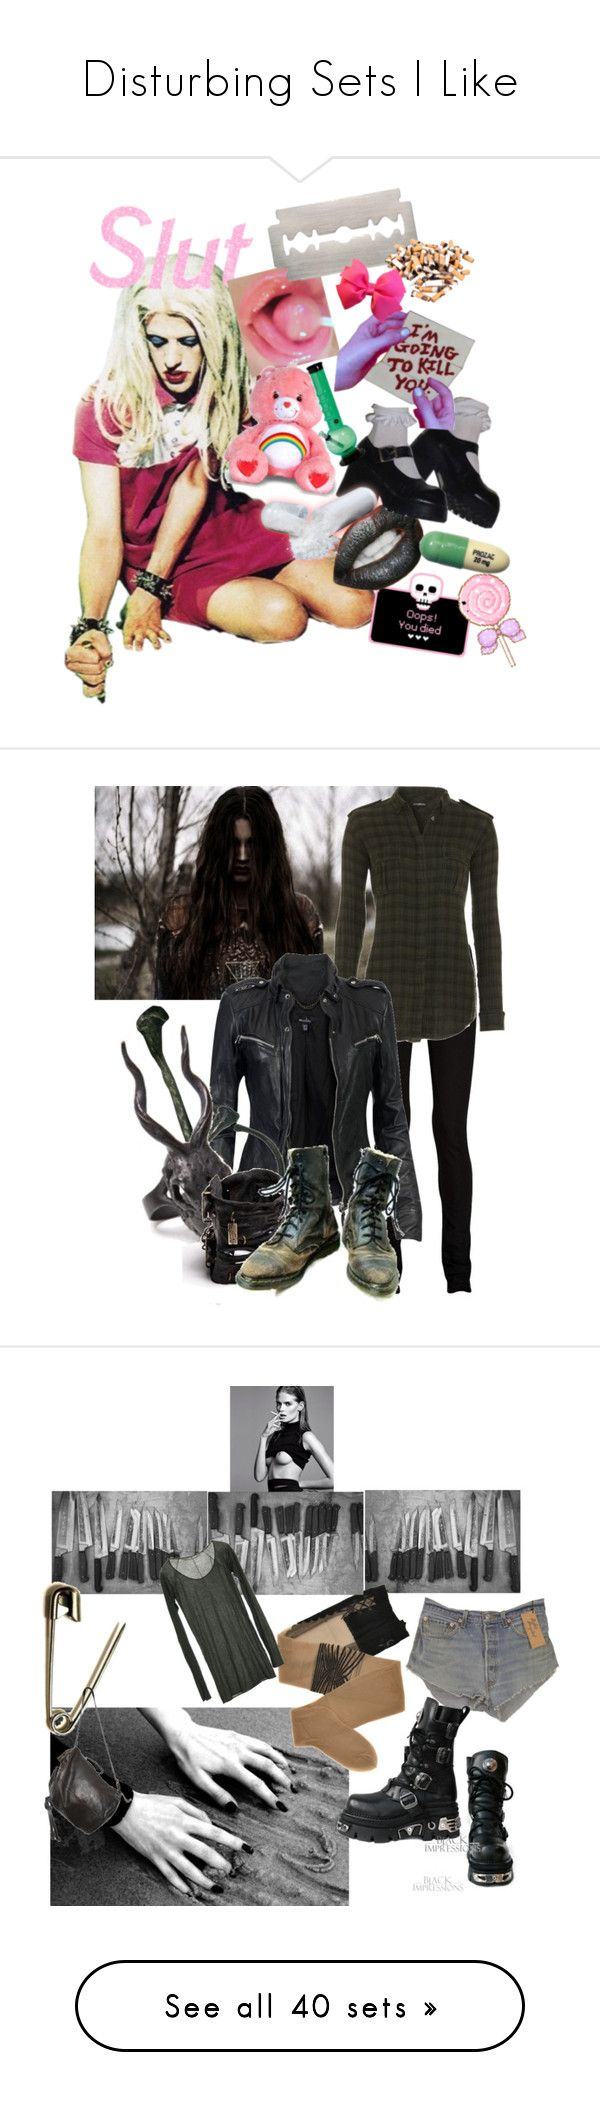 """Disturbing Sets I Like"" by stormbattereddragon ❤ liked on Polyvore featuring art, DRKSHDW, Balmain, MuuBaa, Macha, Lady Grey, LAS Jewelry, Castro NYC, Levi's and Trasparenze"